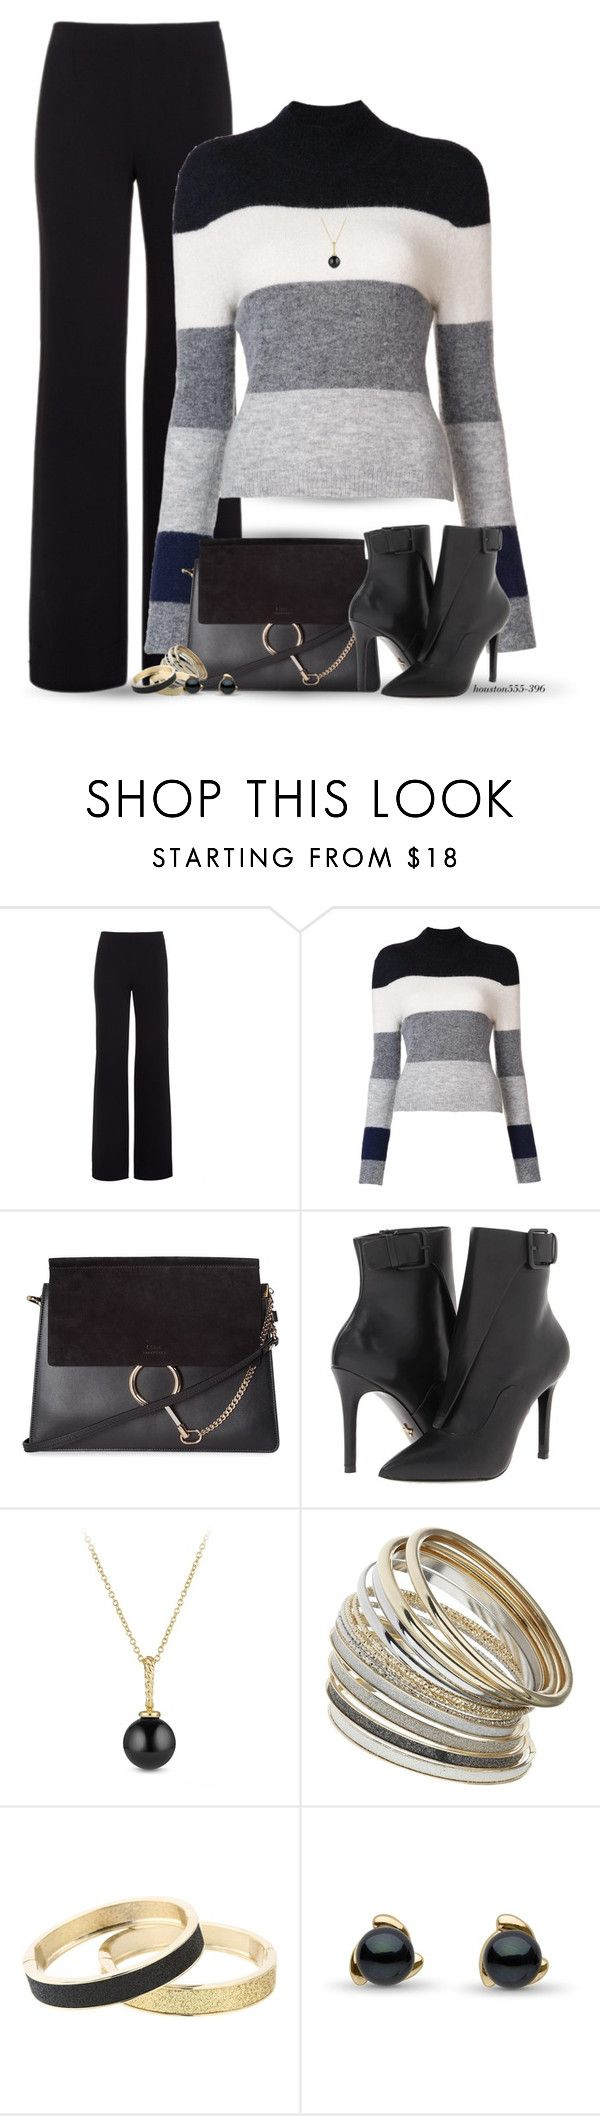 """""""Striped Sweater"""" by houston555-396 ❤ liked on Polyvore featuring Alexander Wang, Equipment, Chloé, Pour La Victoire, David Yurman, Miss Selfridge and Betsey Johnson"""